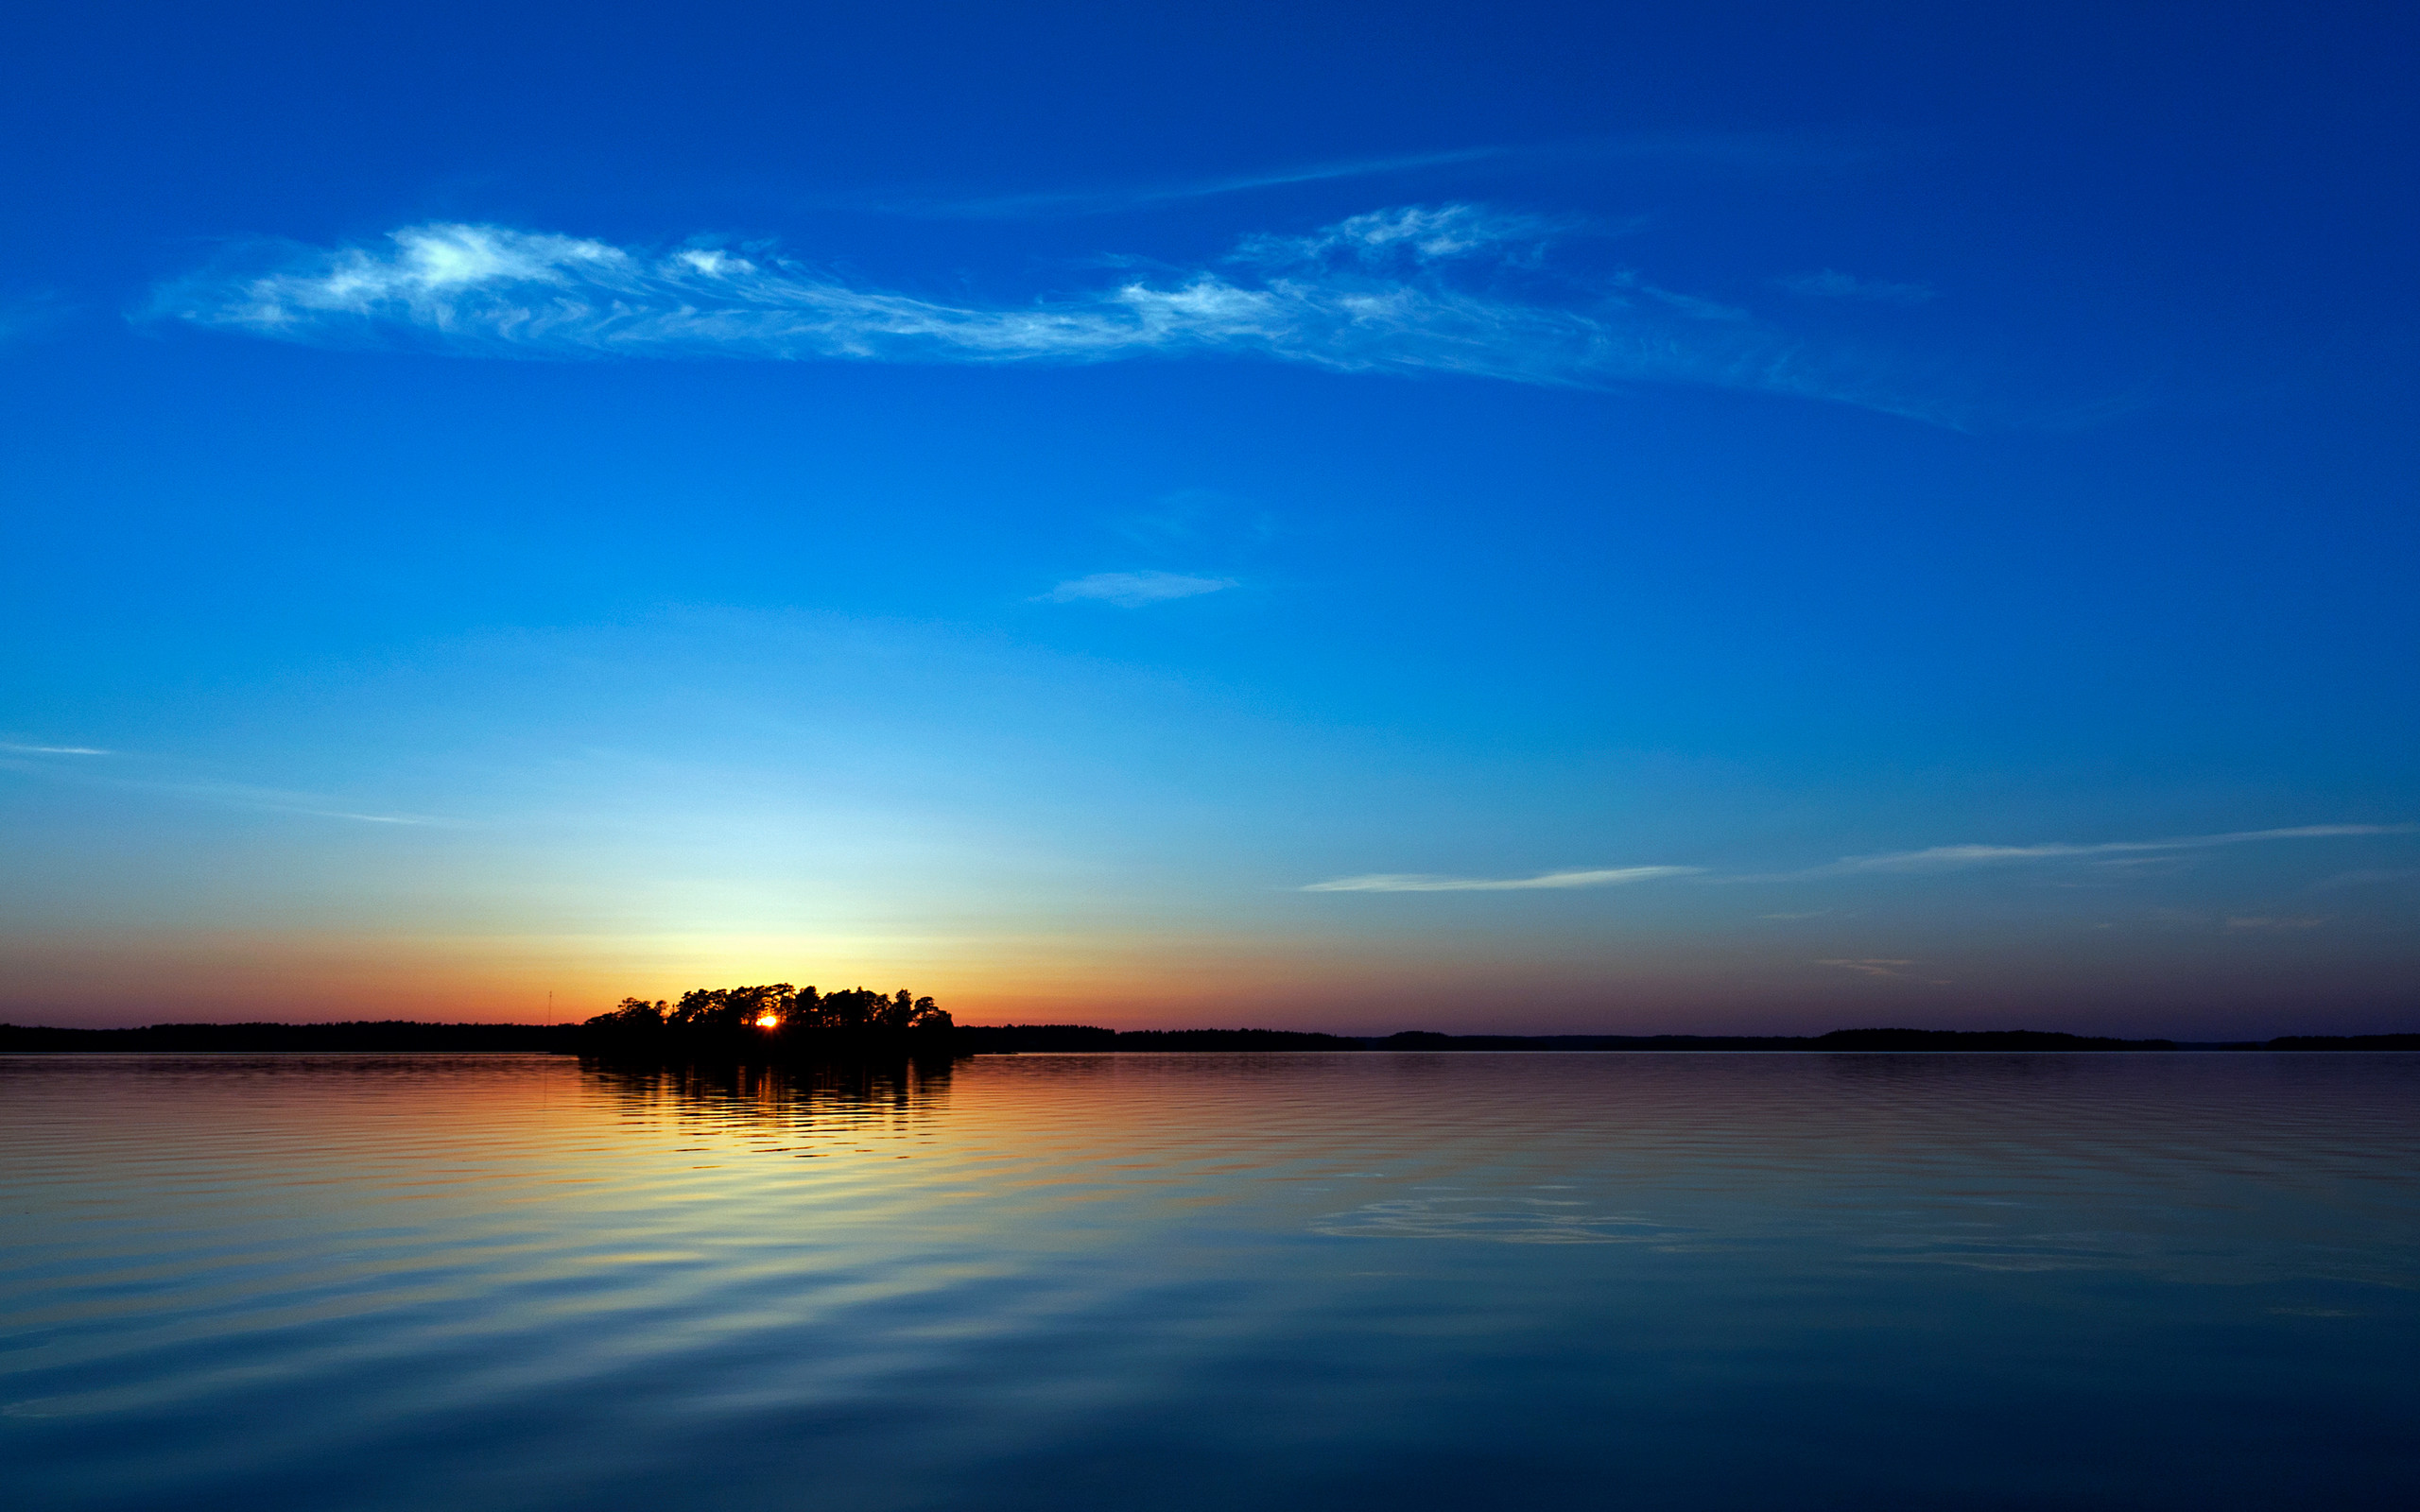 Blue Sunset Wallpapers   HD Wallpapers